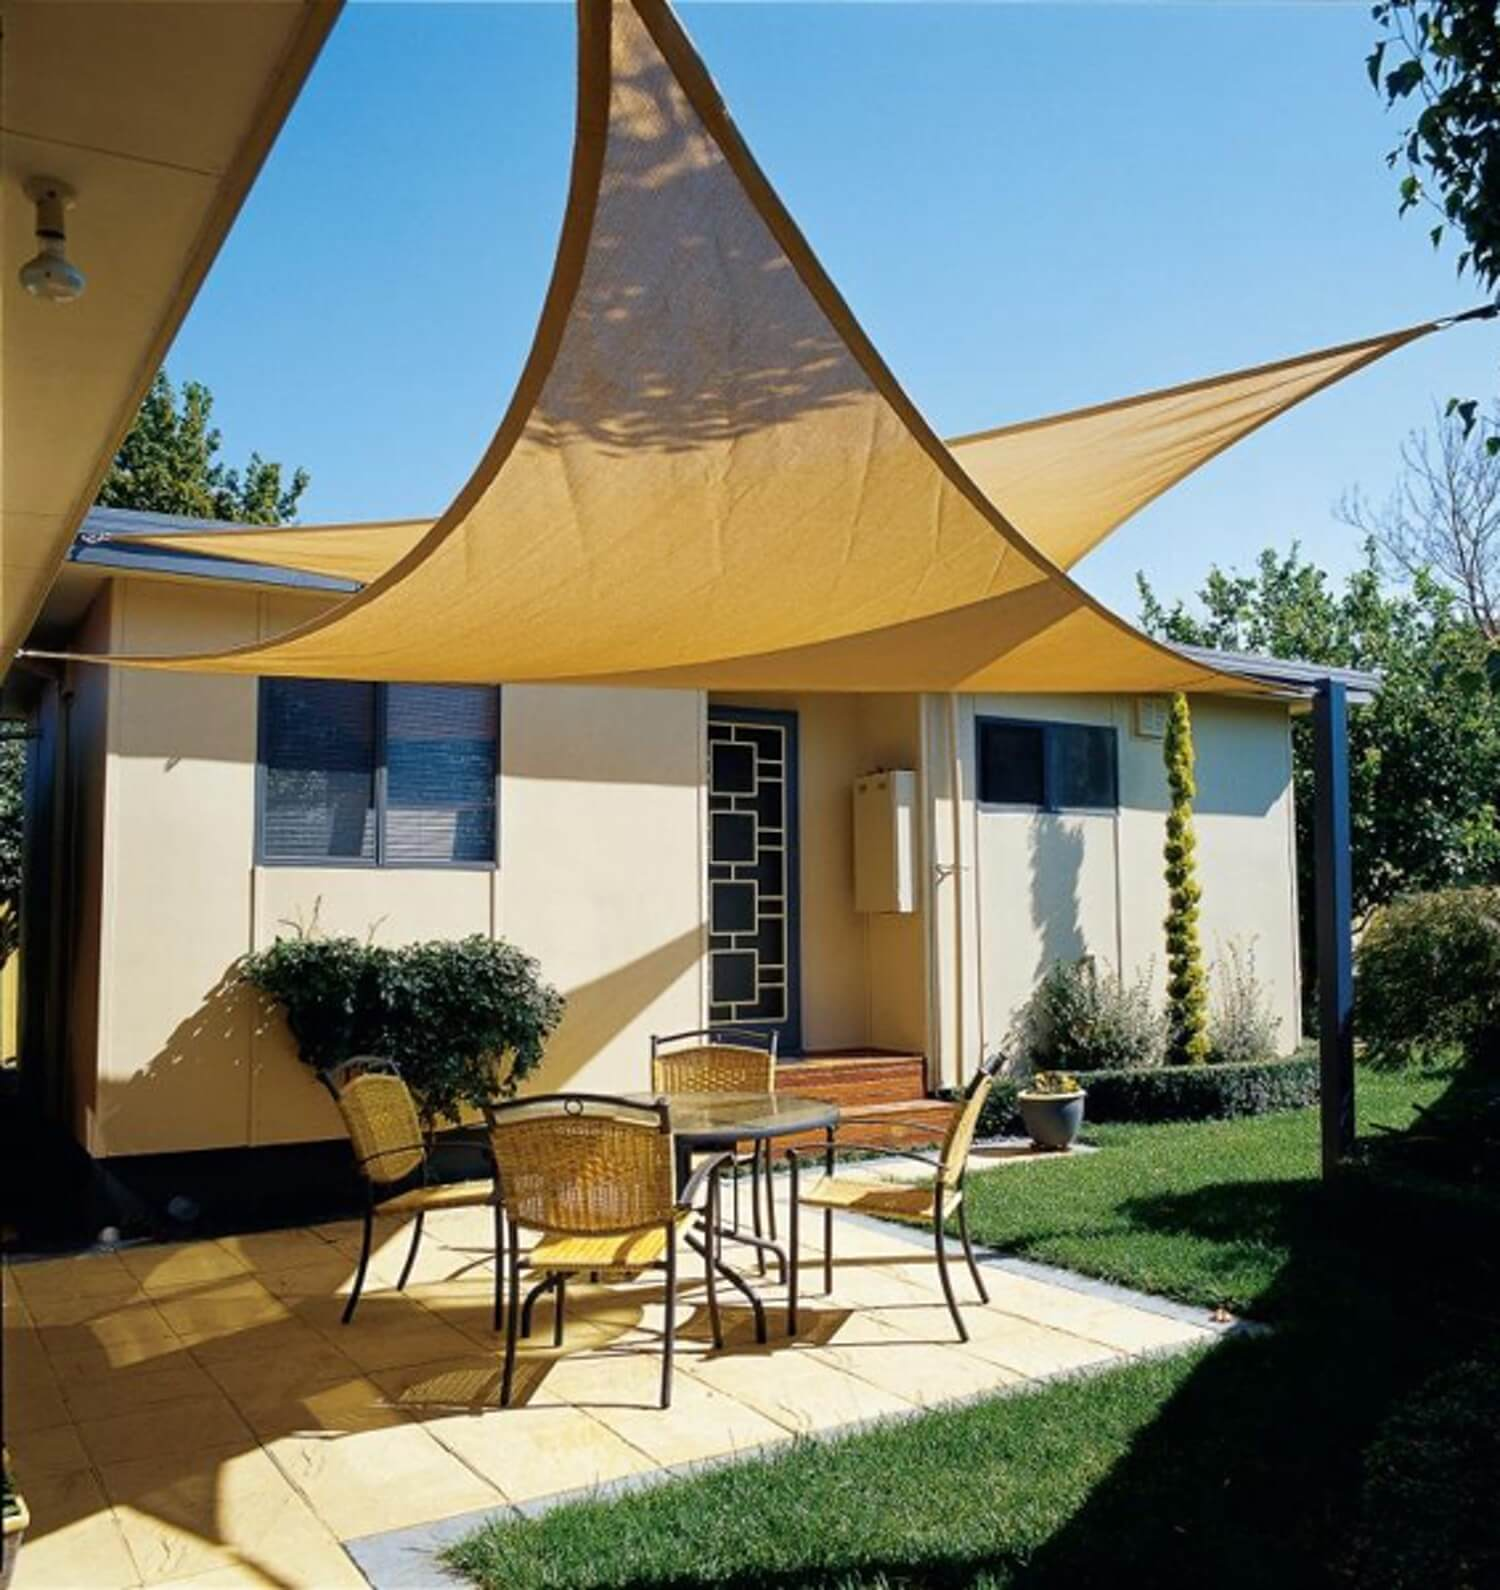 ways shade idea budget affordable fresh inexpensive and ideas for your patio deck to